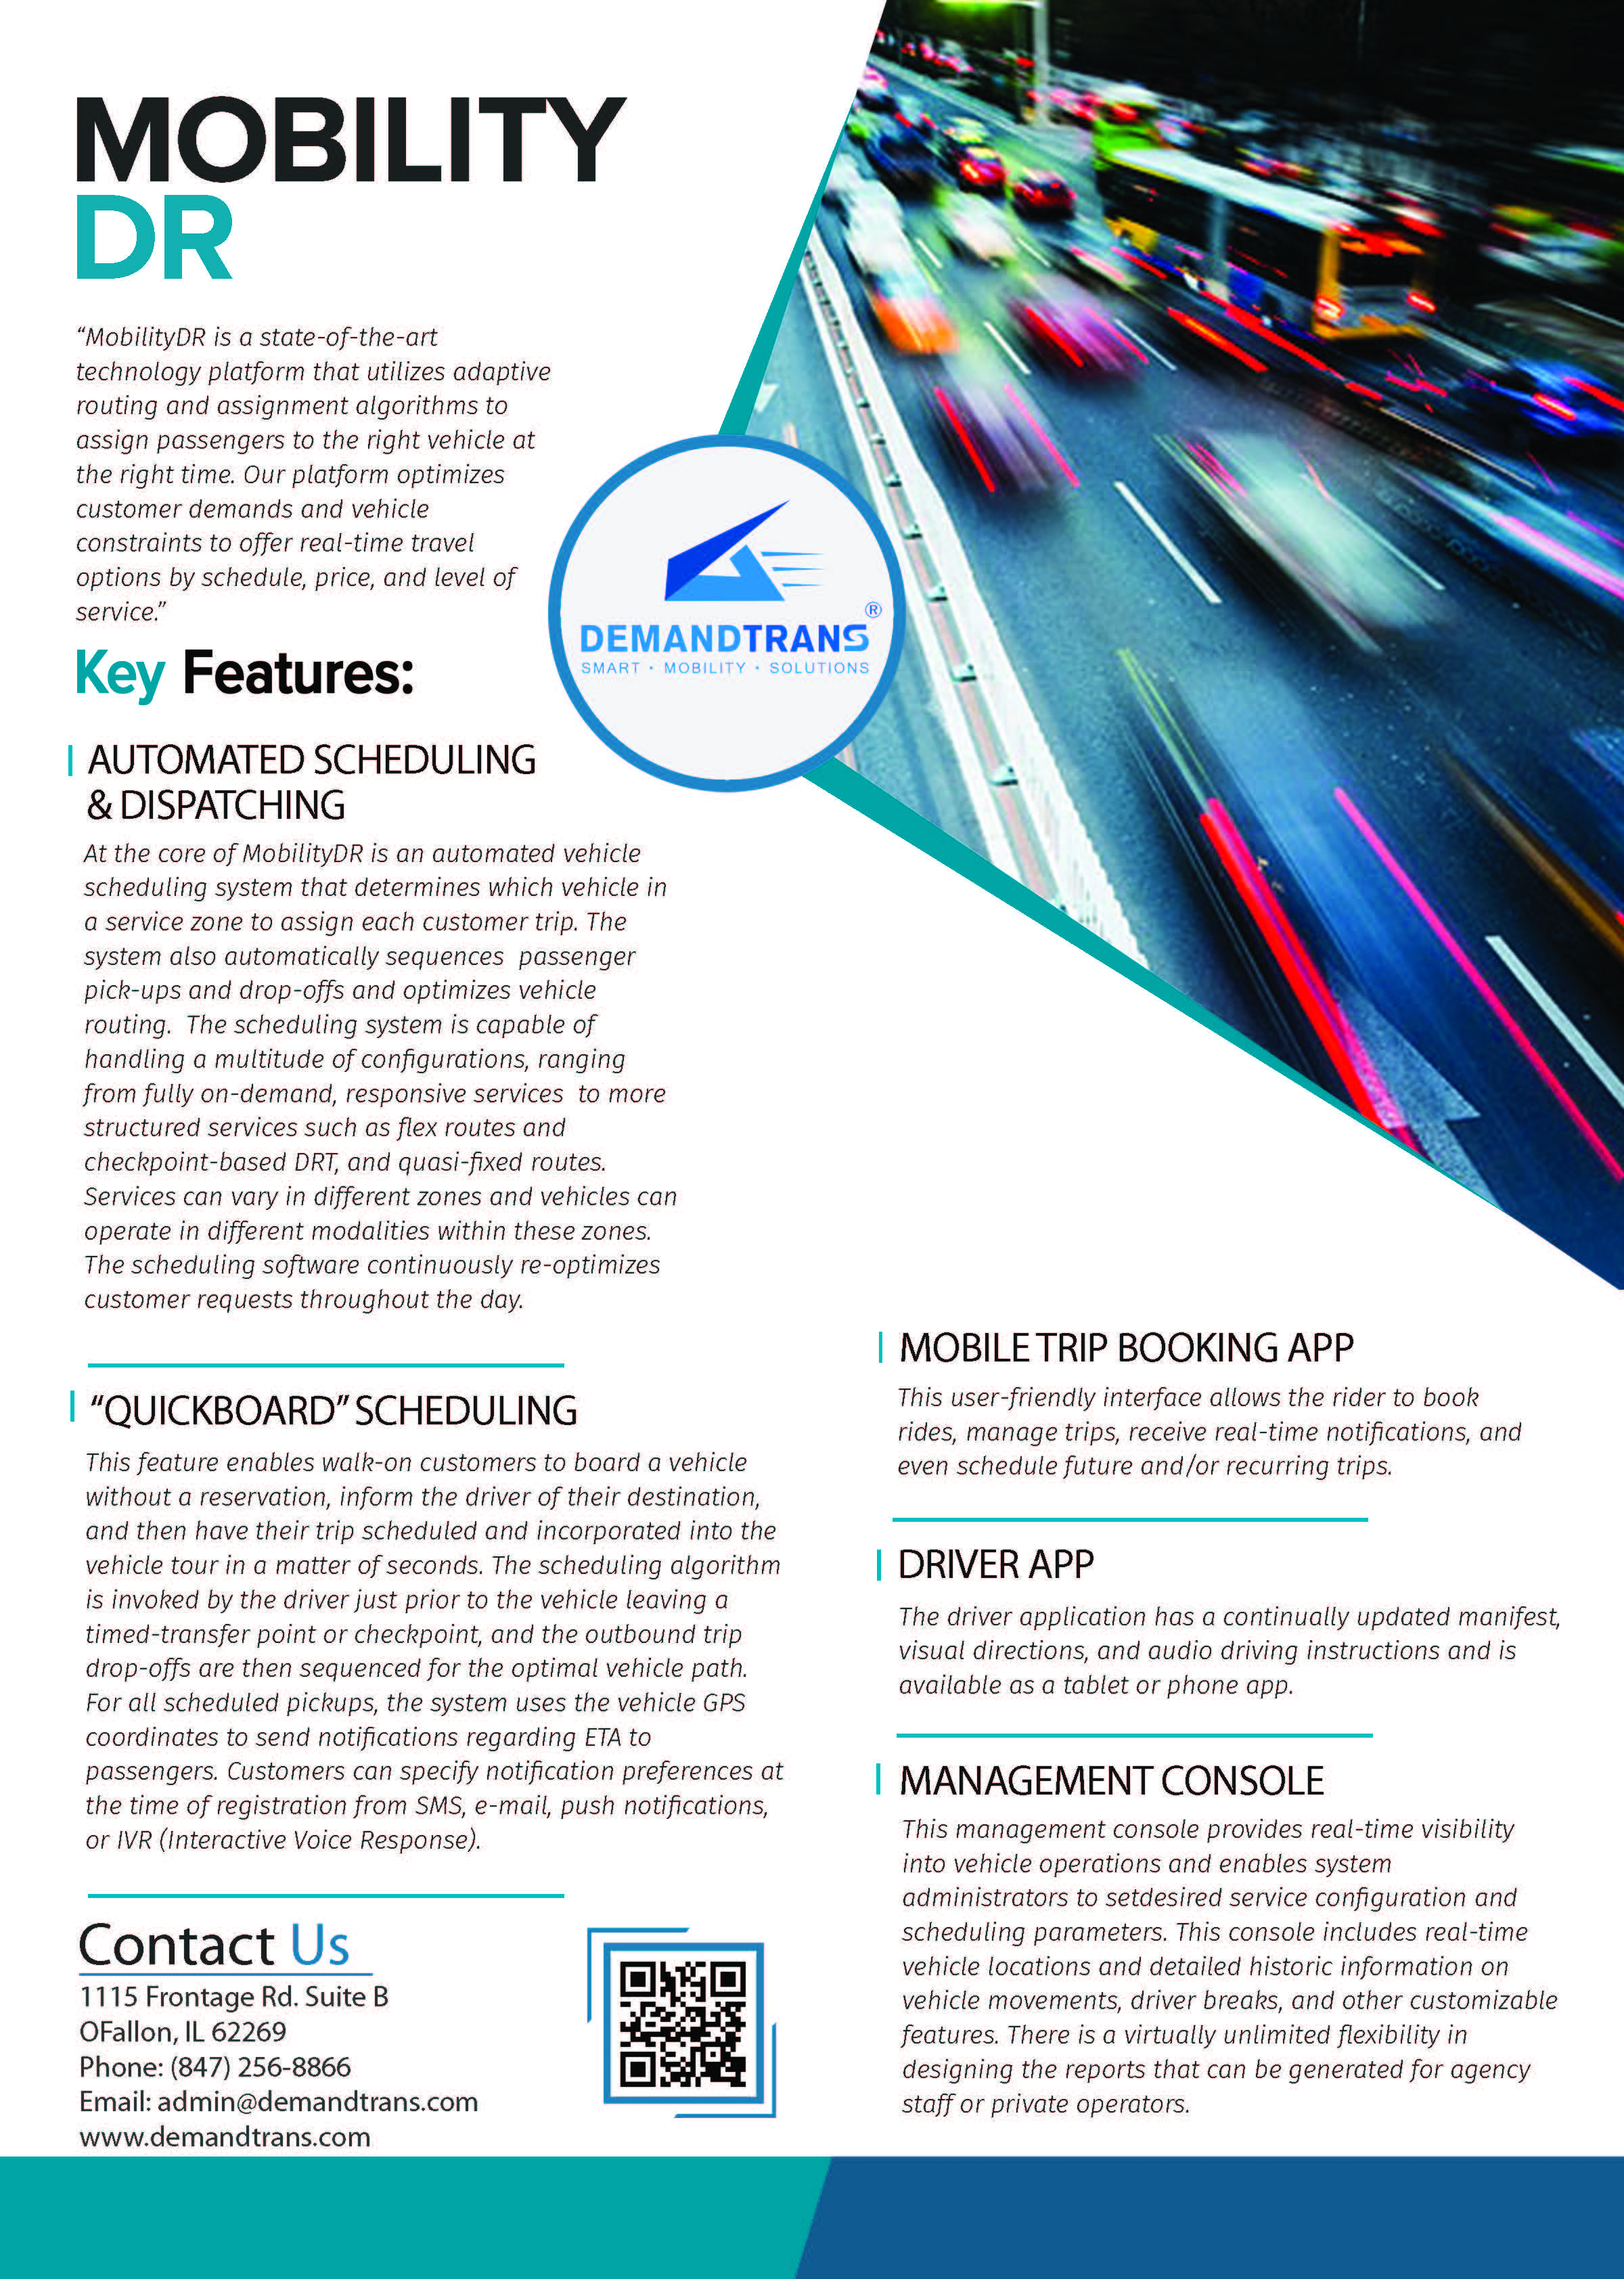 MobilityDR - Dynamic Mobility Capabilities